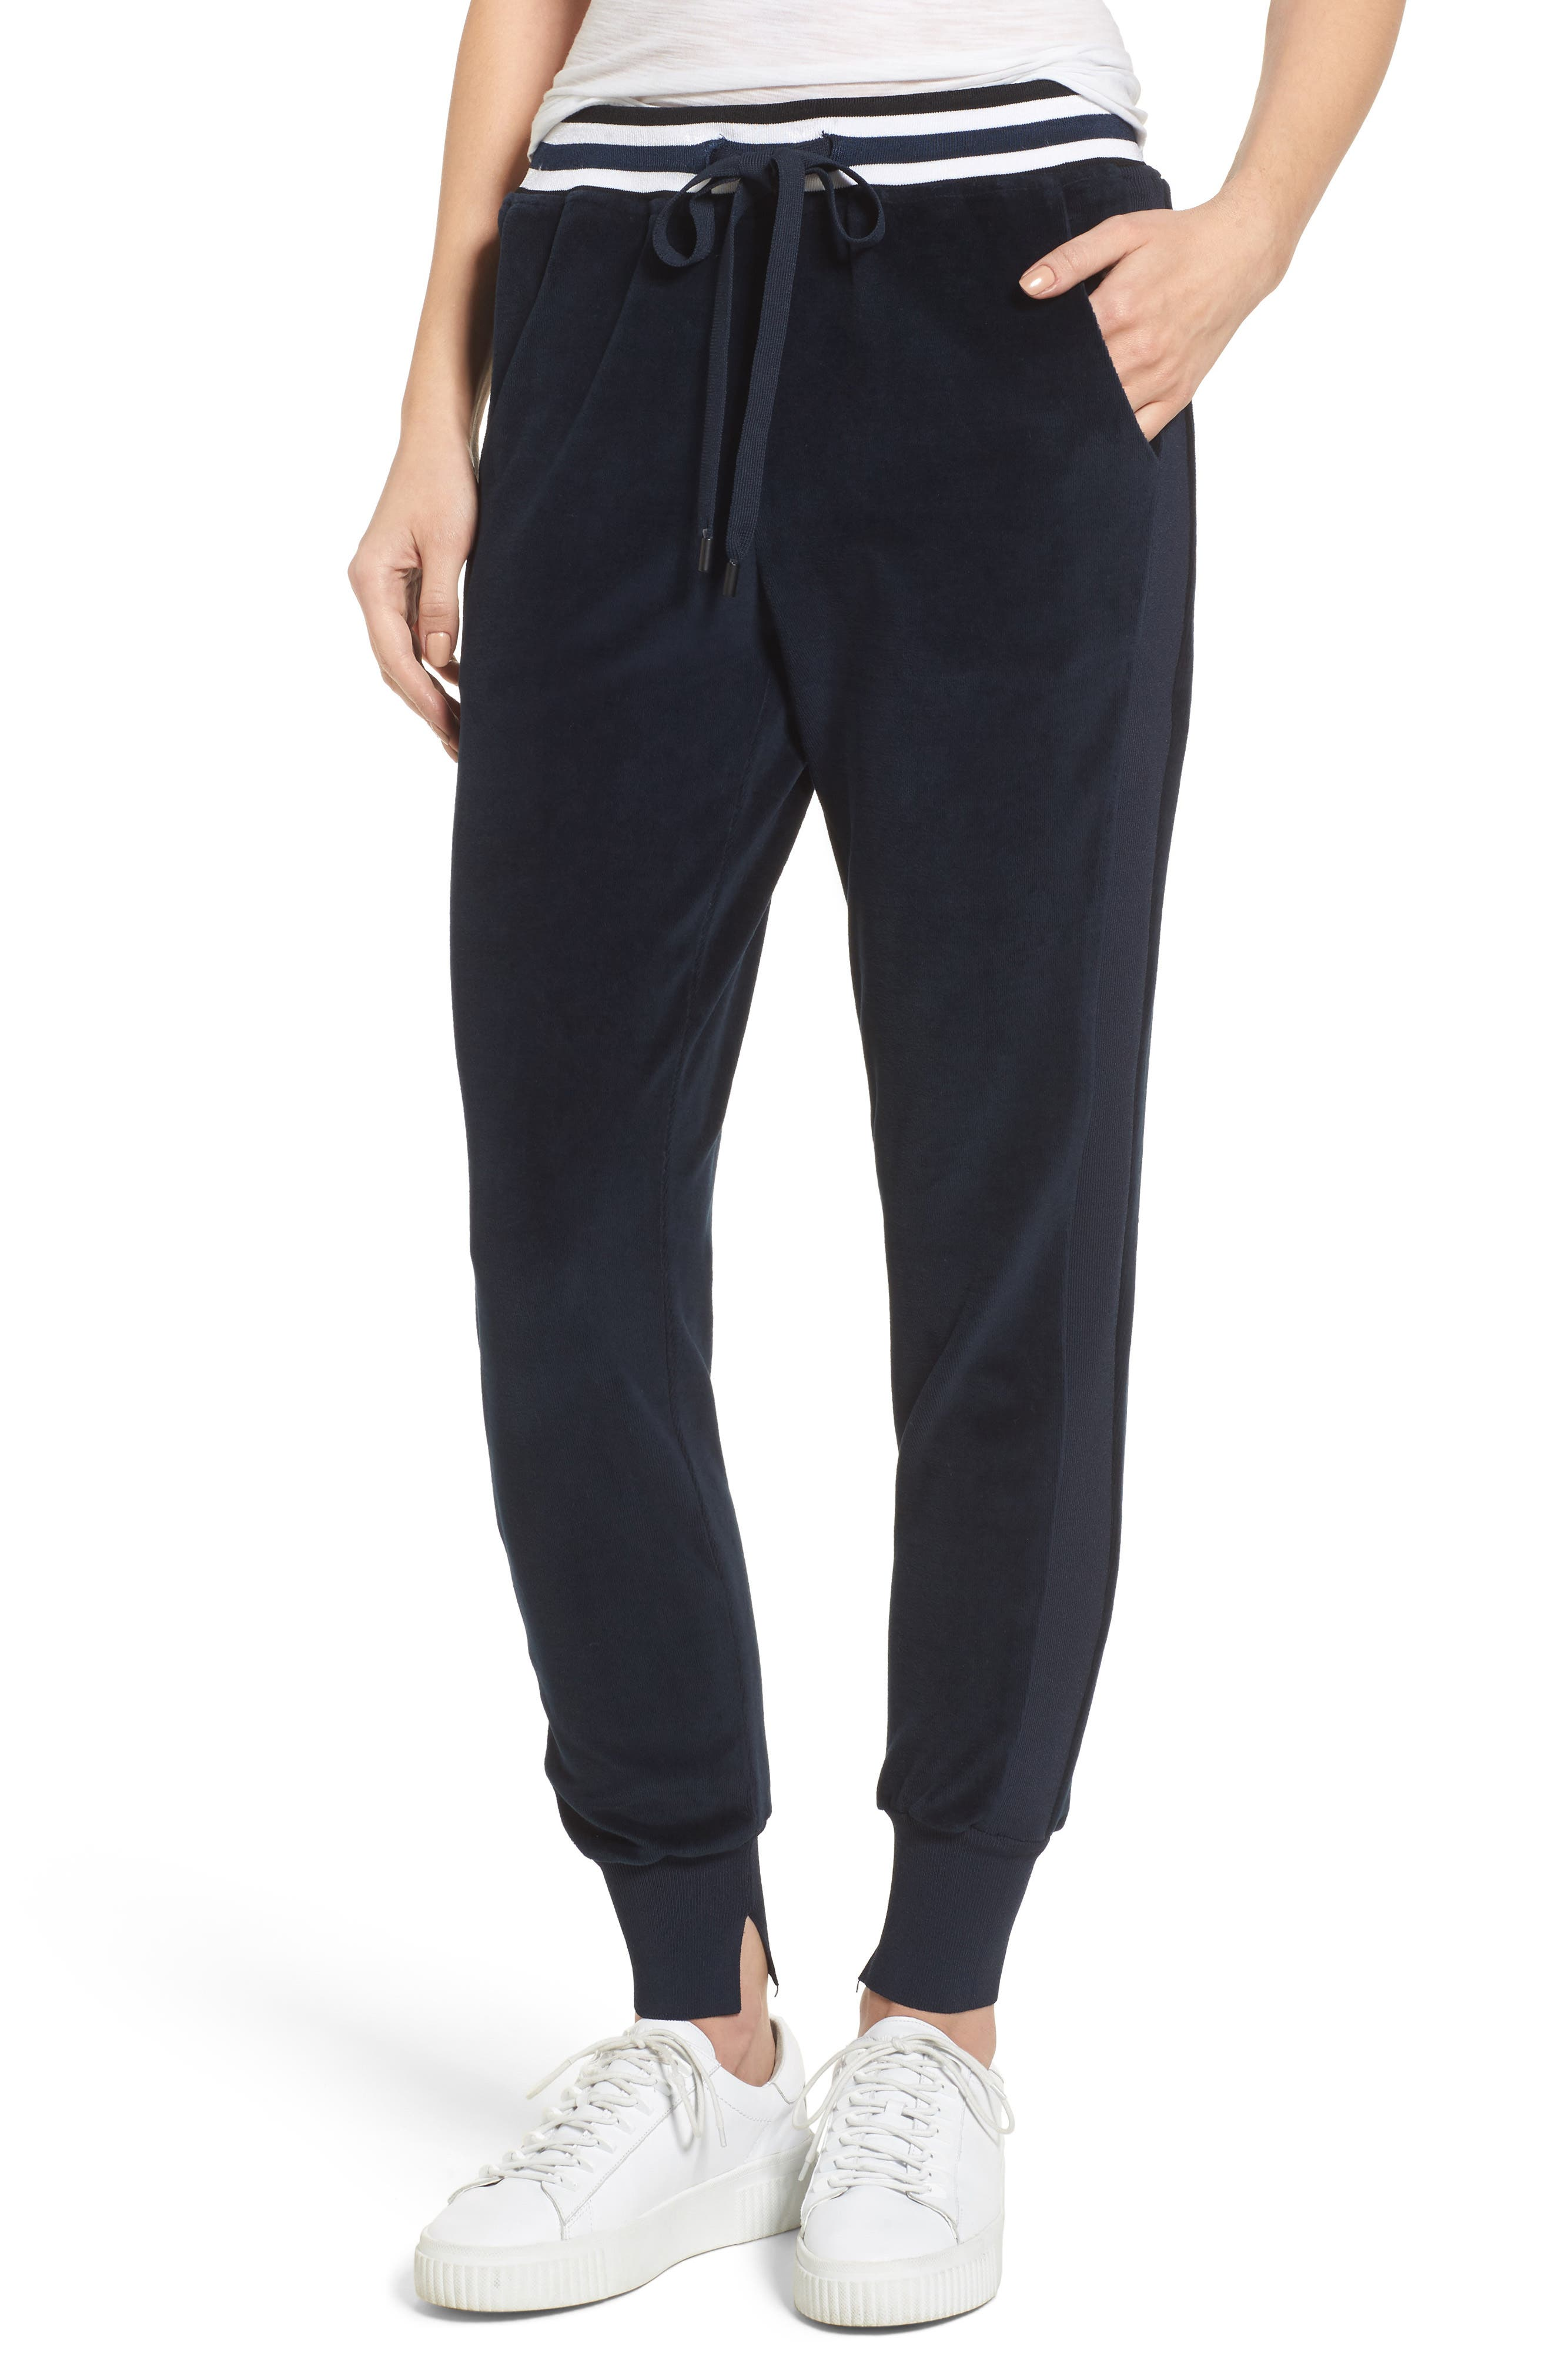 Main Image - KENDALL + KYLIE Velour Jogger Pants